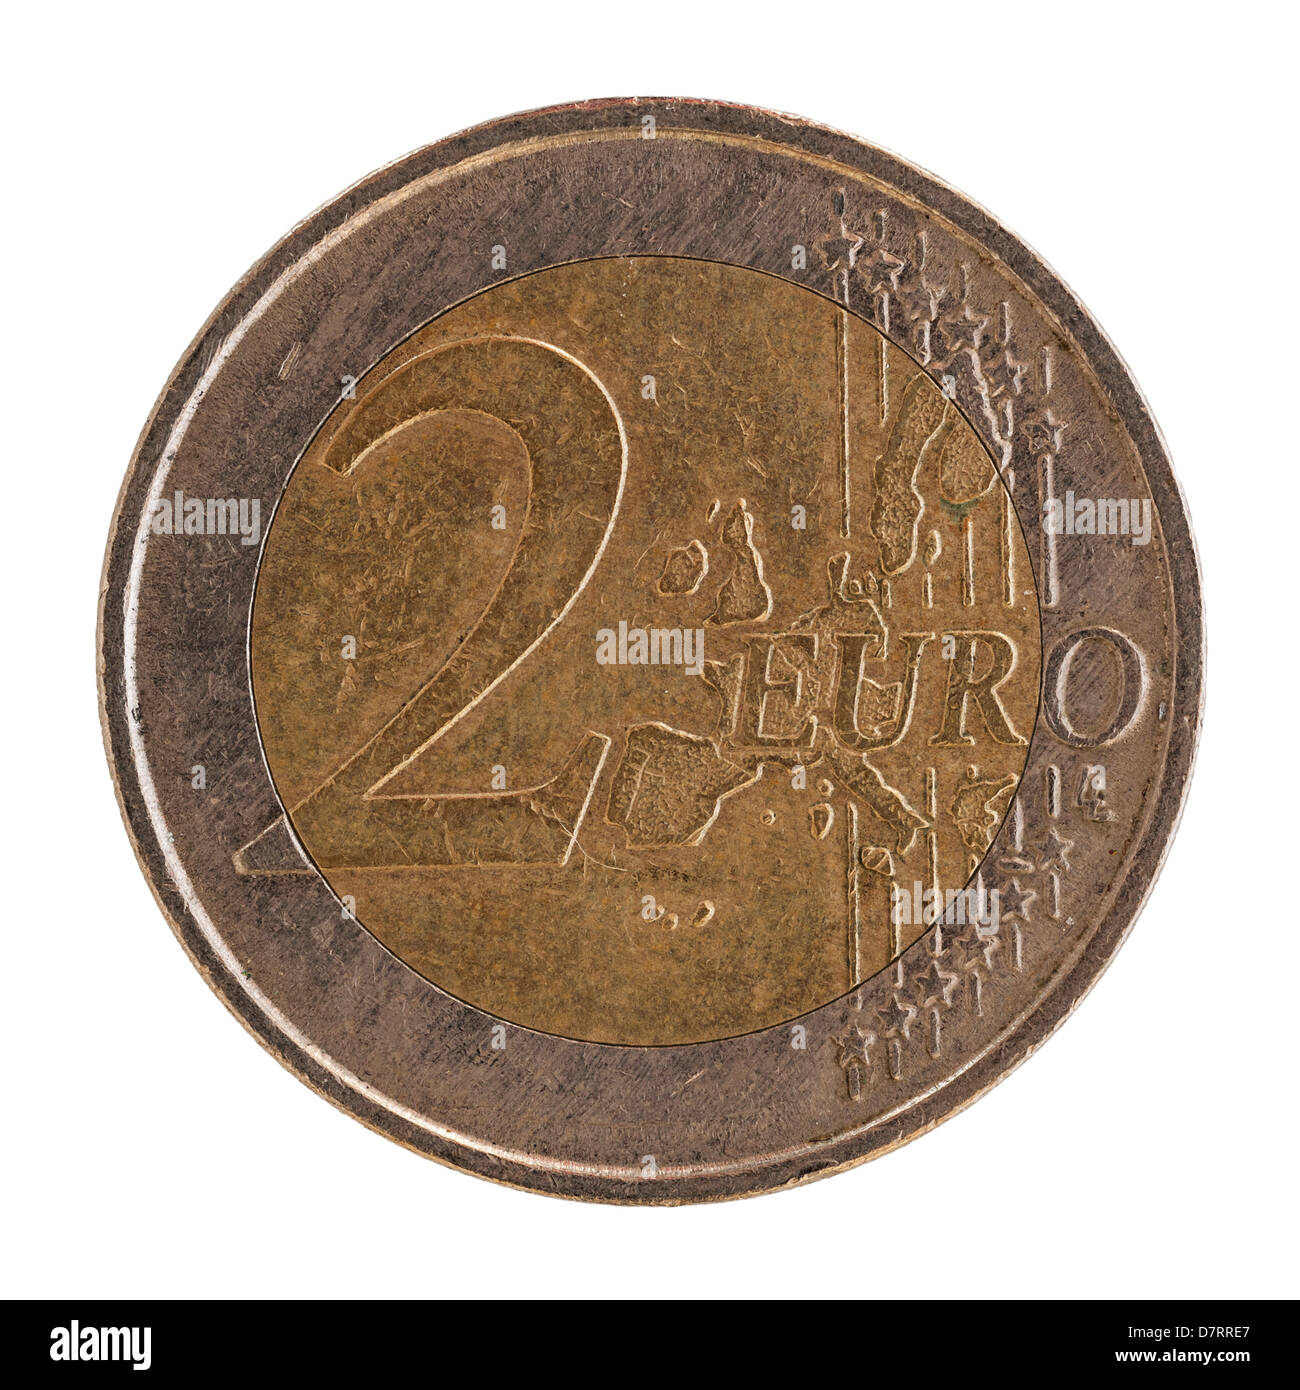 A Spanish 2 euro coin on a white background - Stock Image